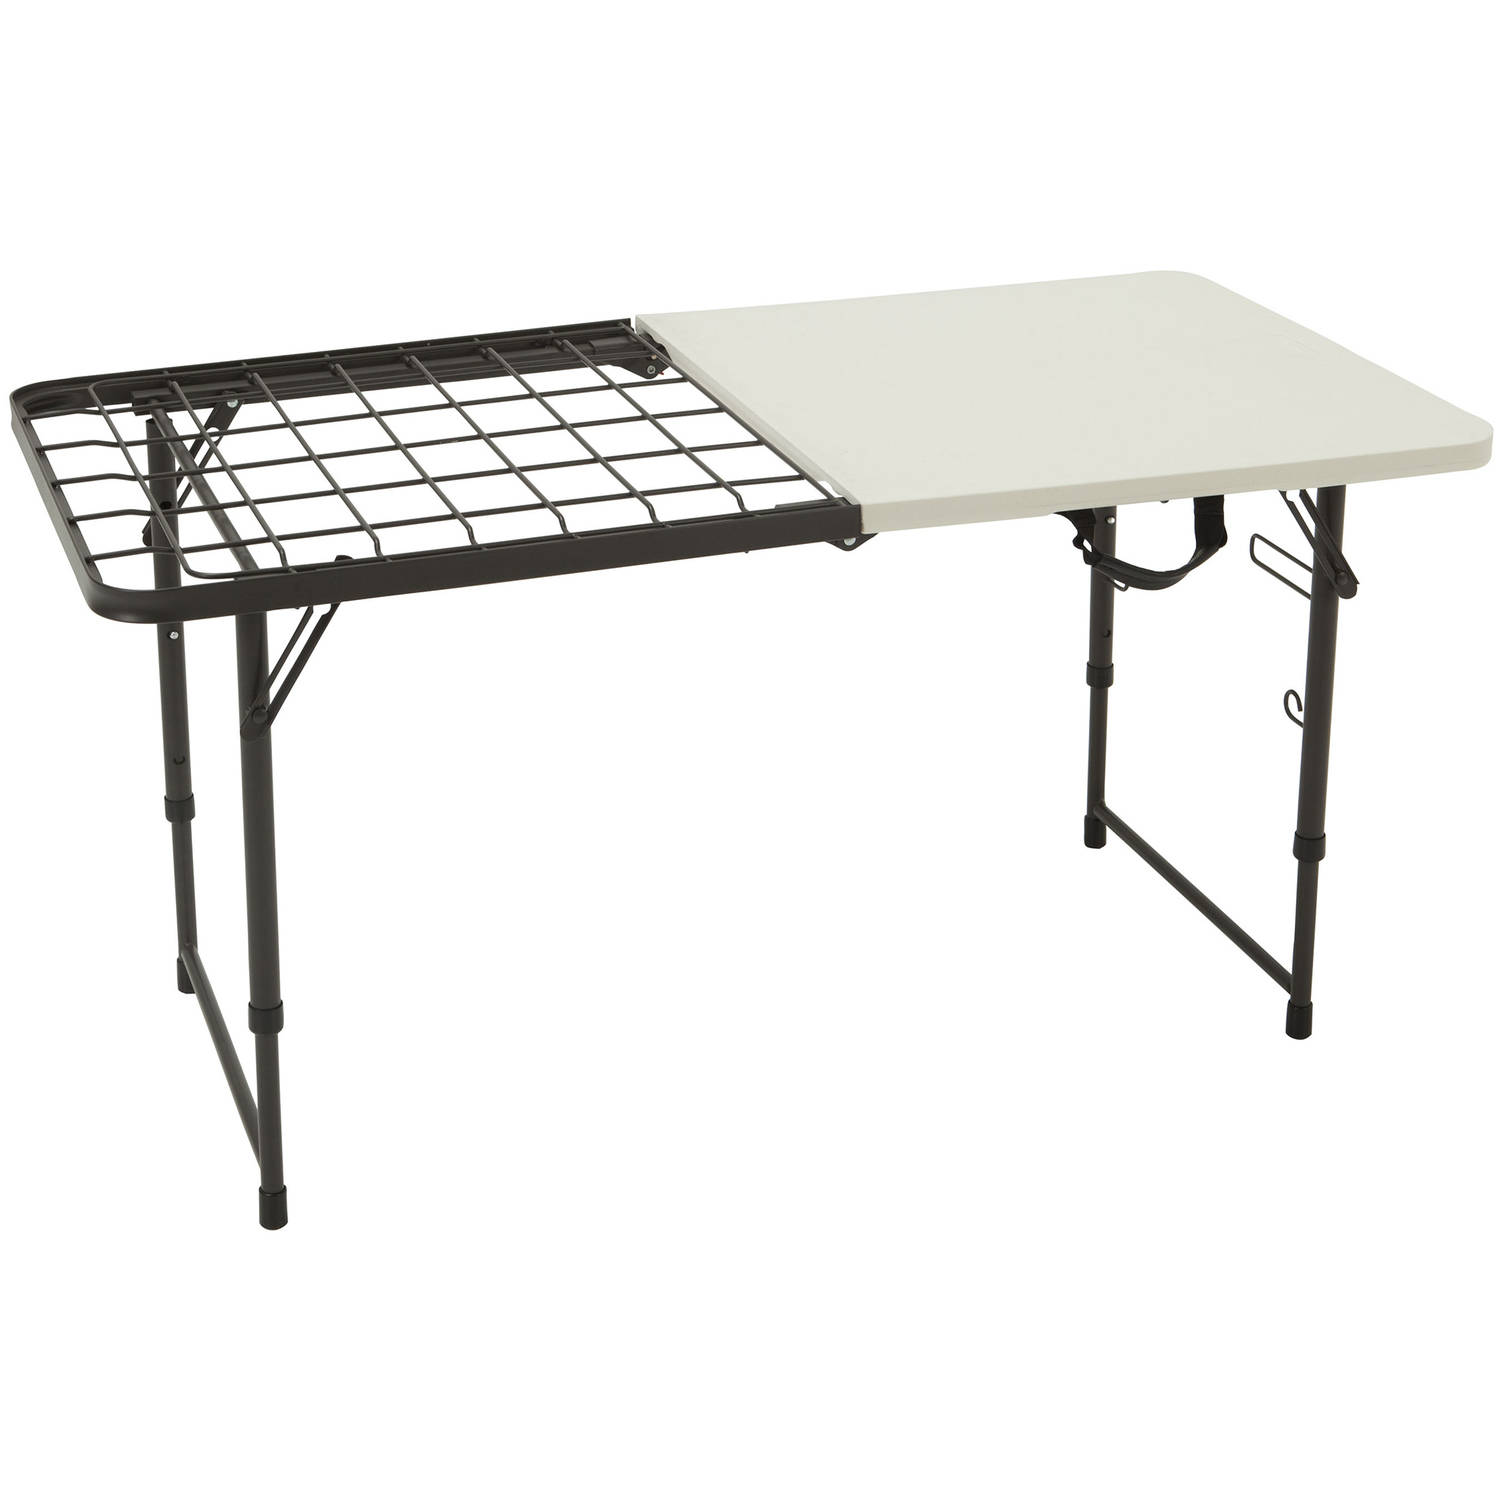 Lifetime 4u0027 Fold In Half Cooking Table